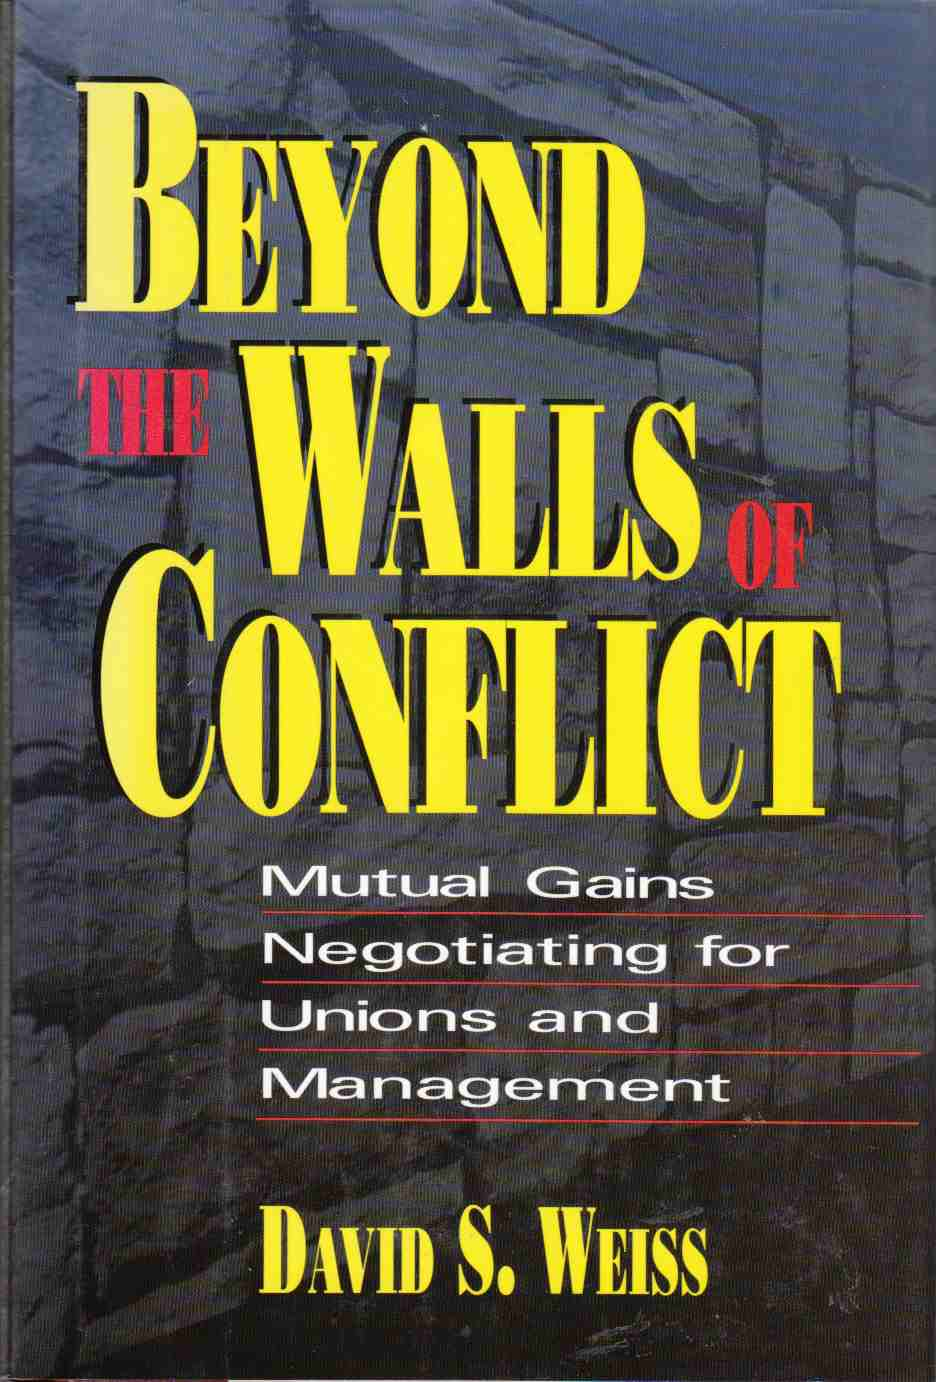 Image for Beyond the Walls of Conflict Mutual Gains Negotiating for Unions and Management